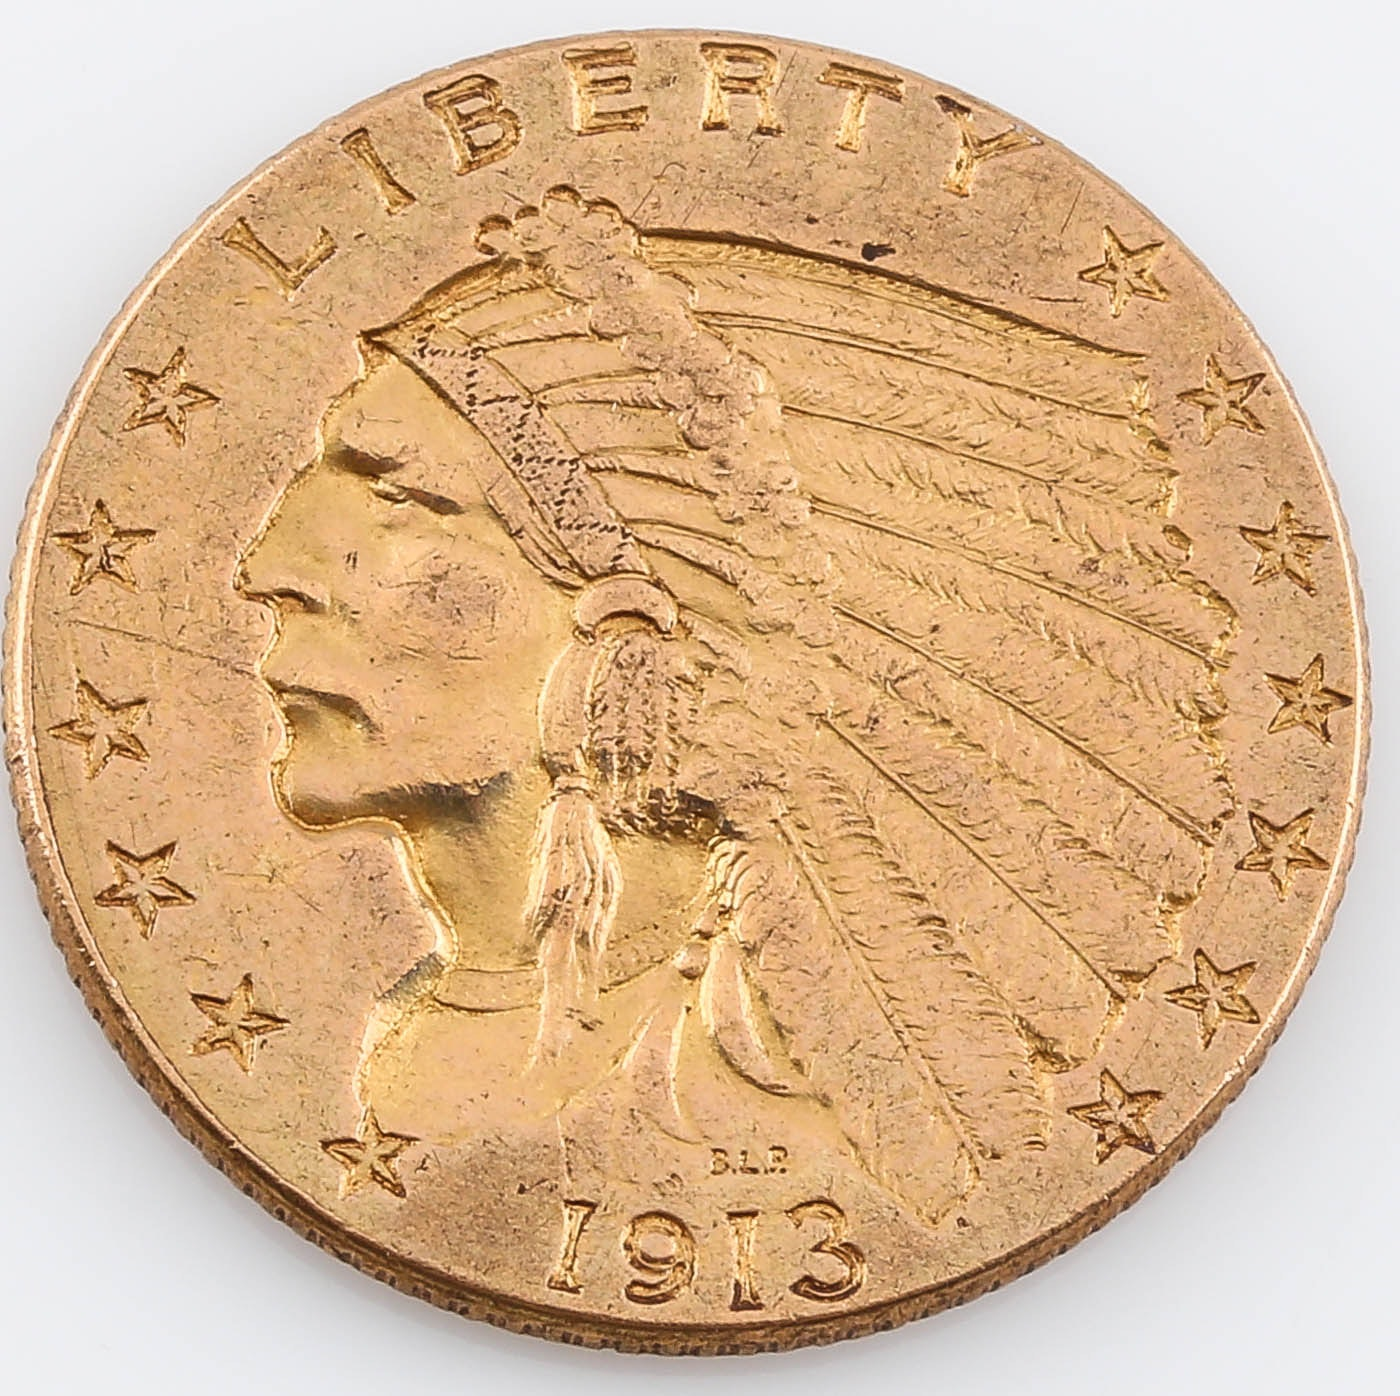 1913 Indian Head $2 1/2 Gold Coin